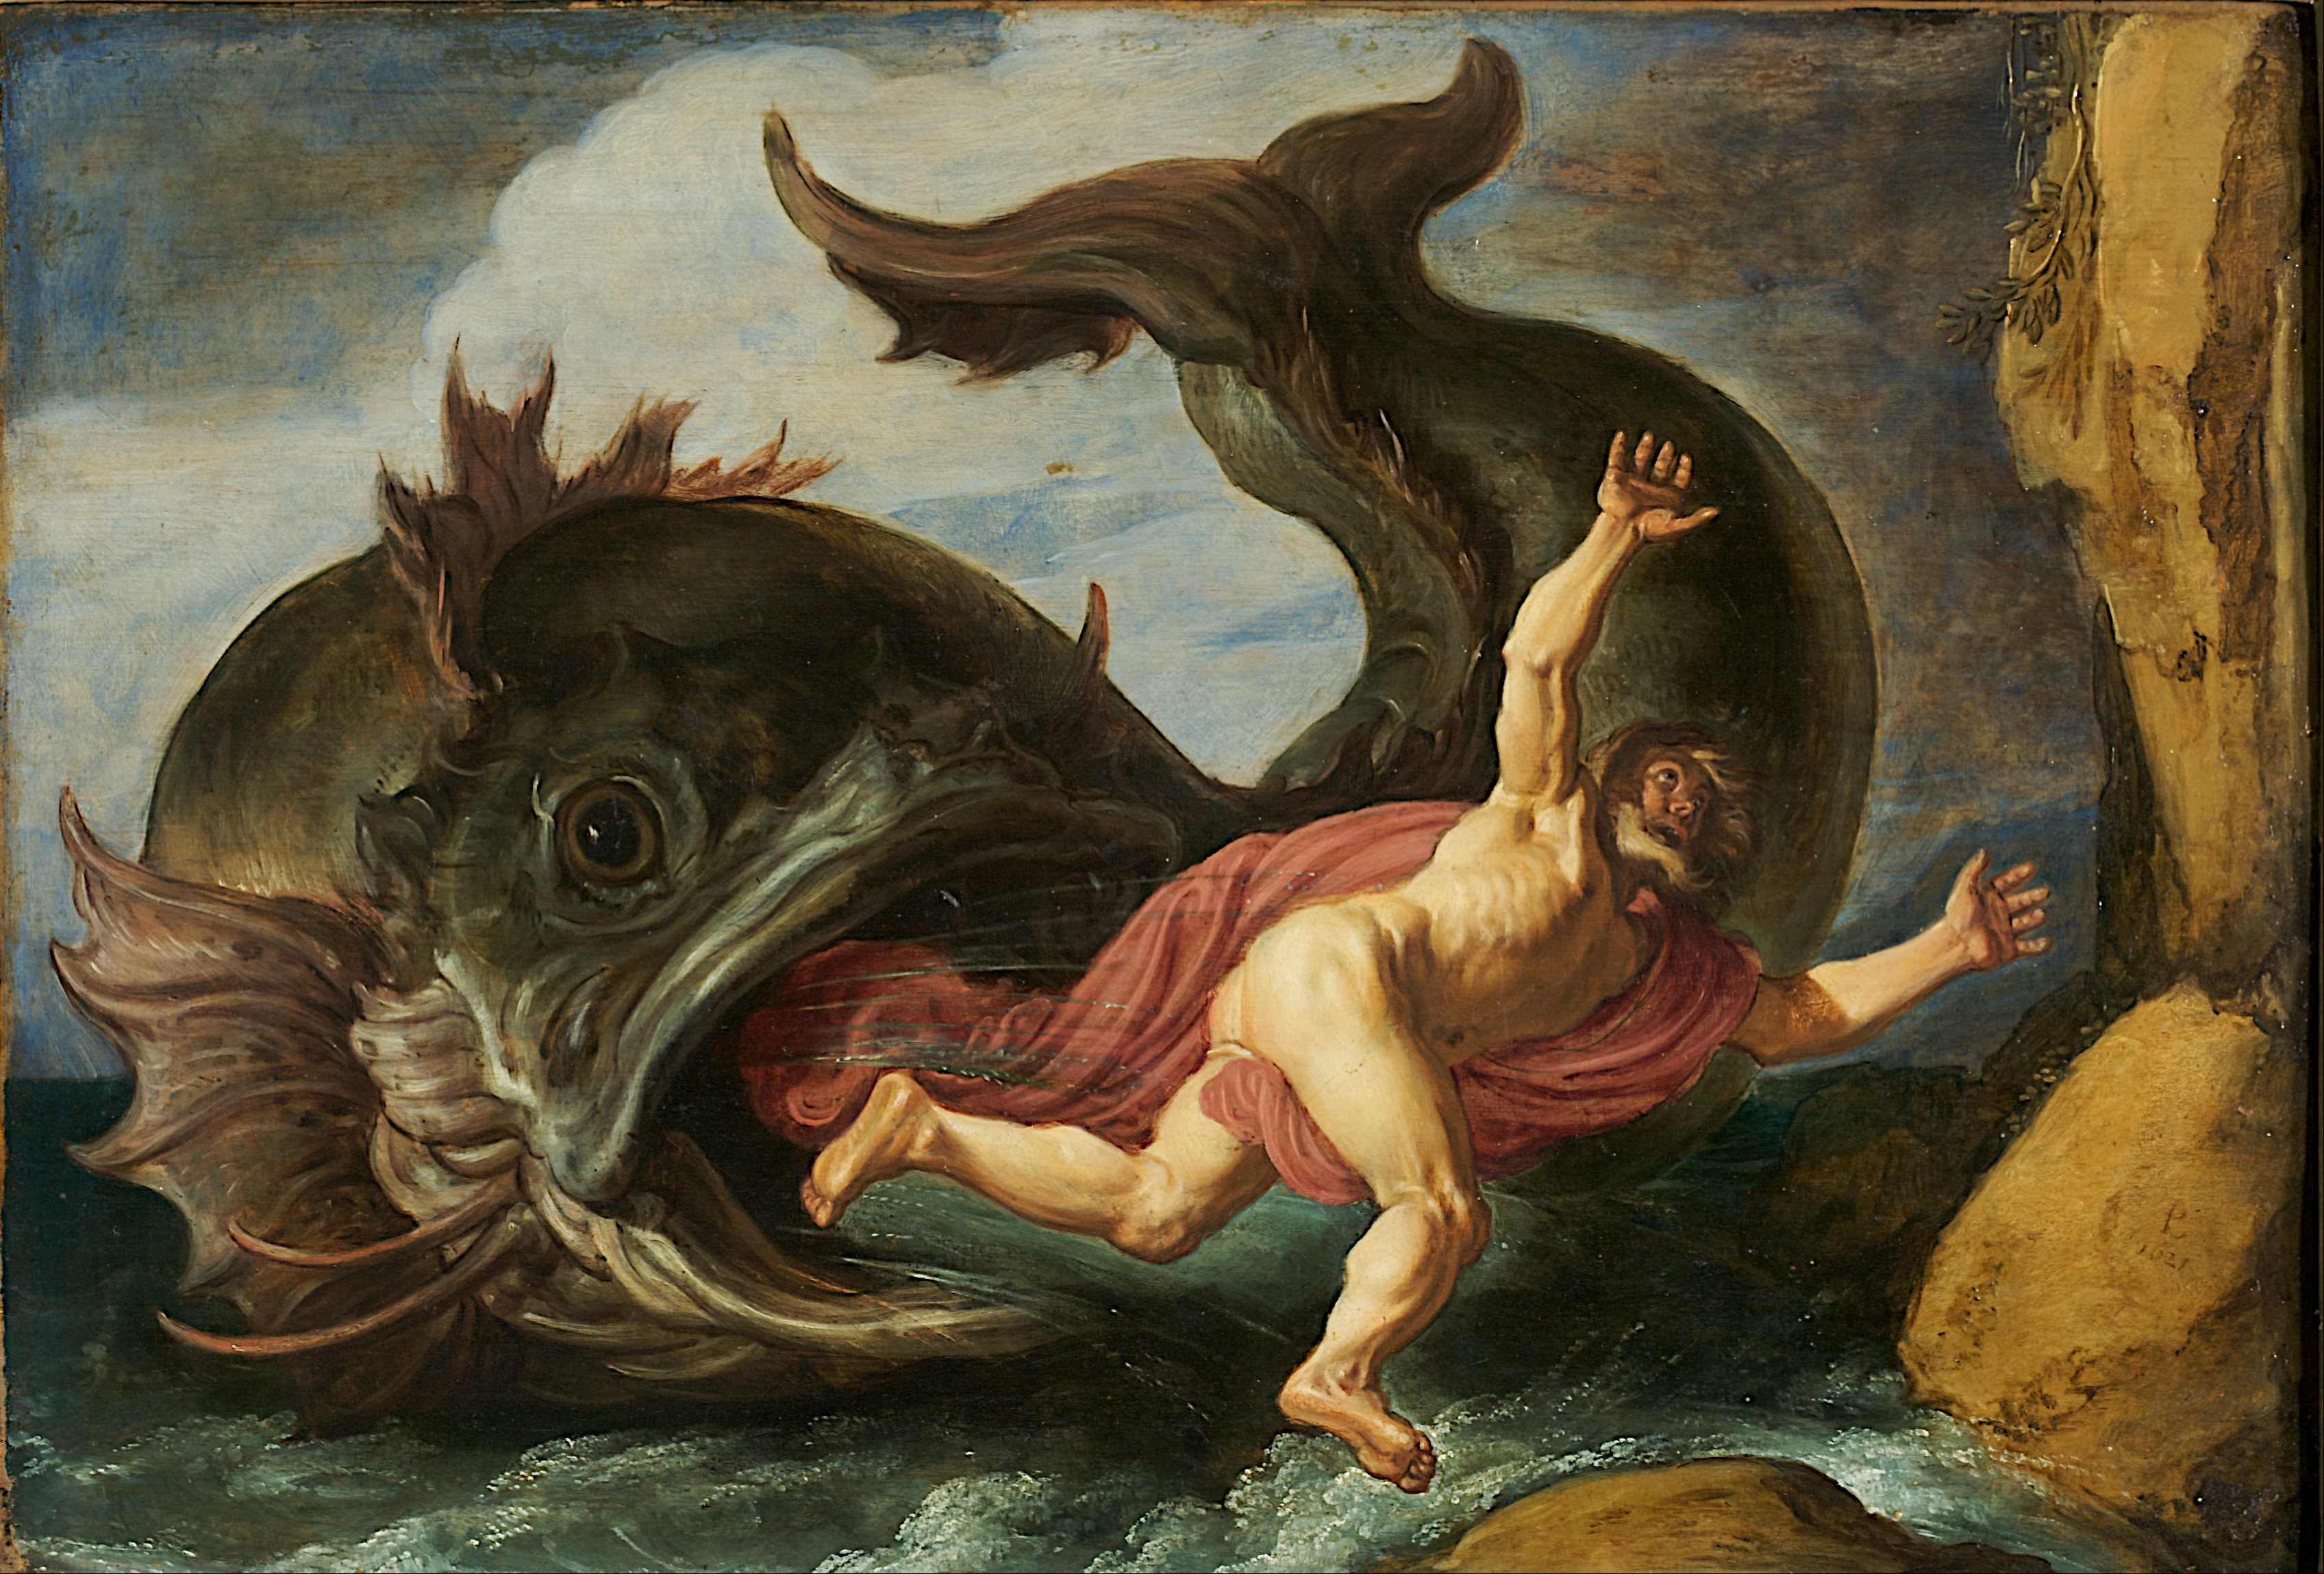 http://upload.wikimedia.org/wikipedia/commons/4/44/Pieter_Lastman_-_Jonah_and_the_Whale_-_Google_Art_Project.jpg